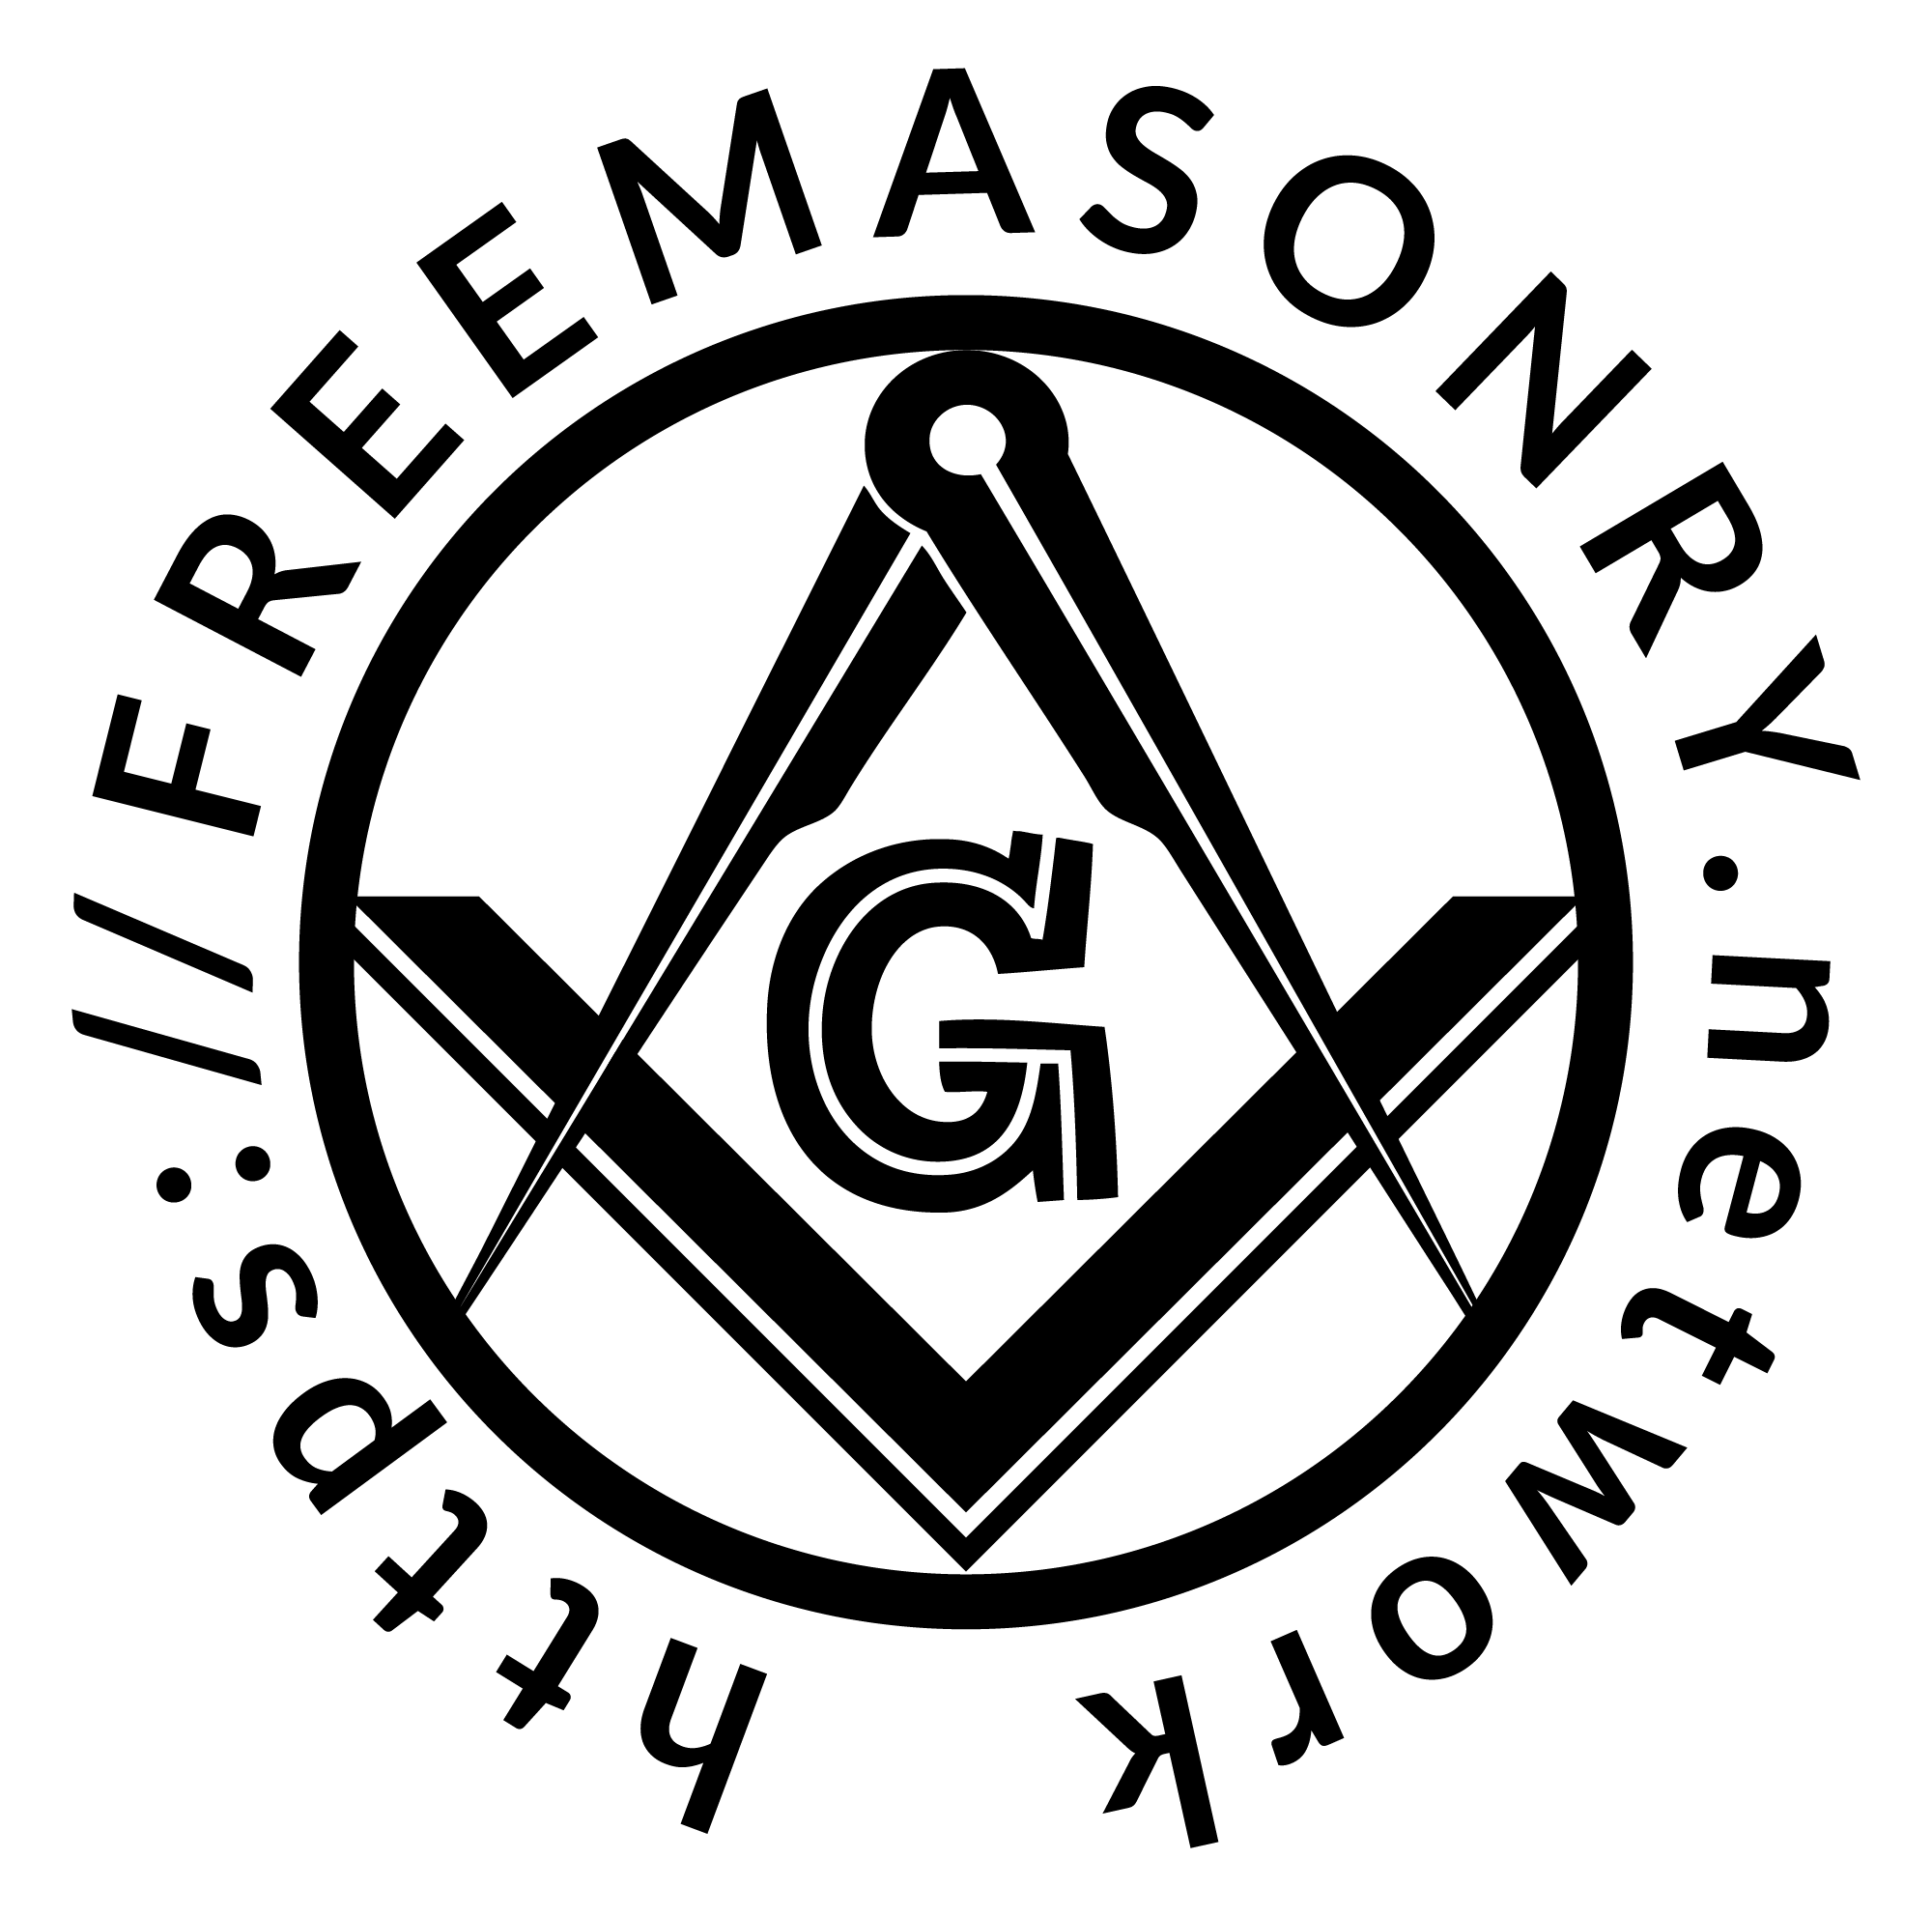 Freemasonry in Great Britain, British Freemasonry